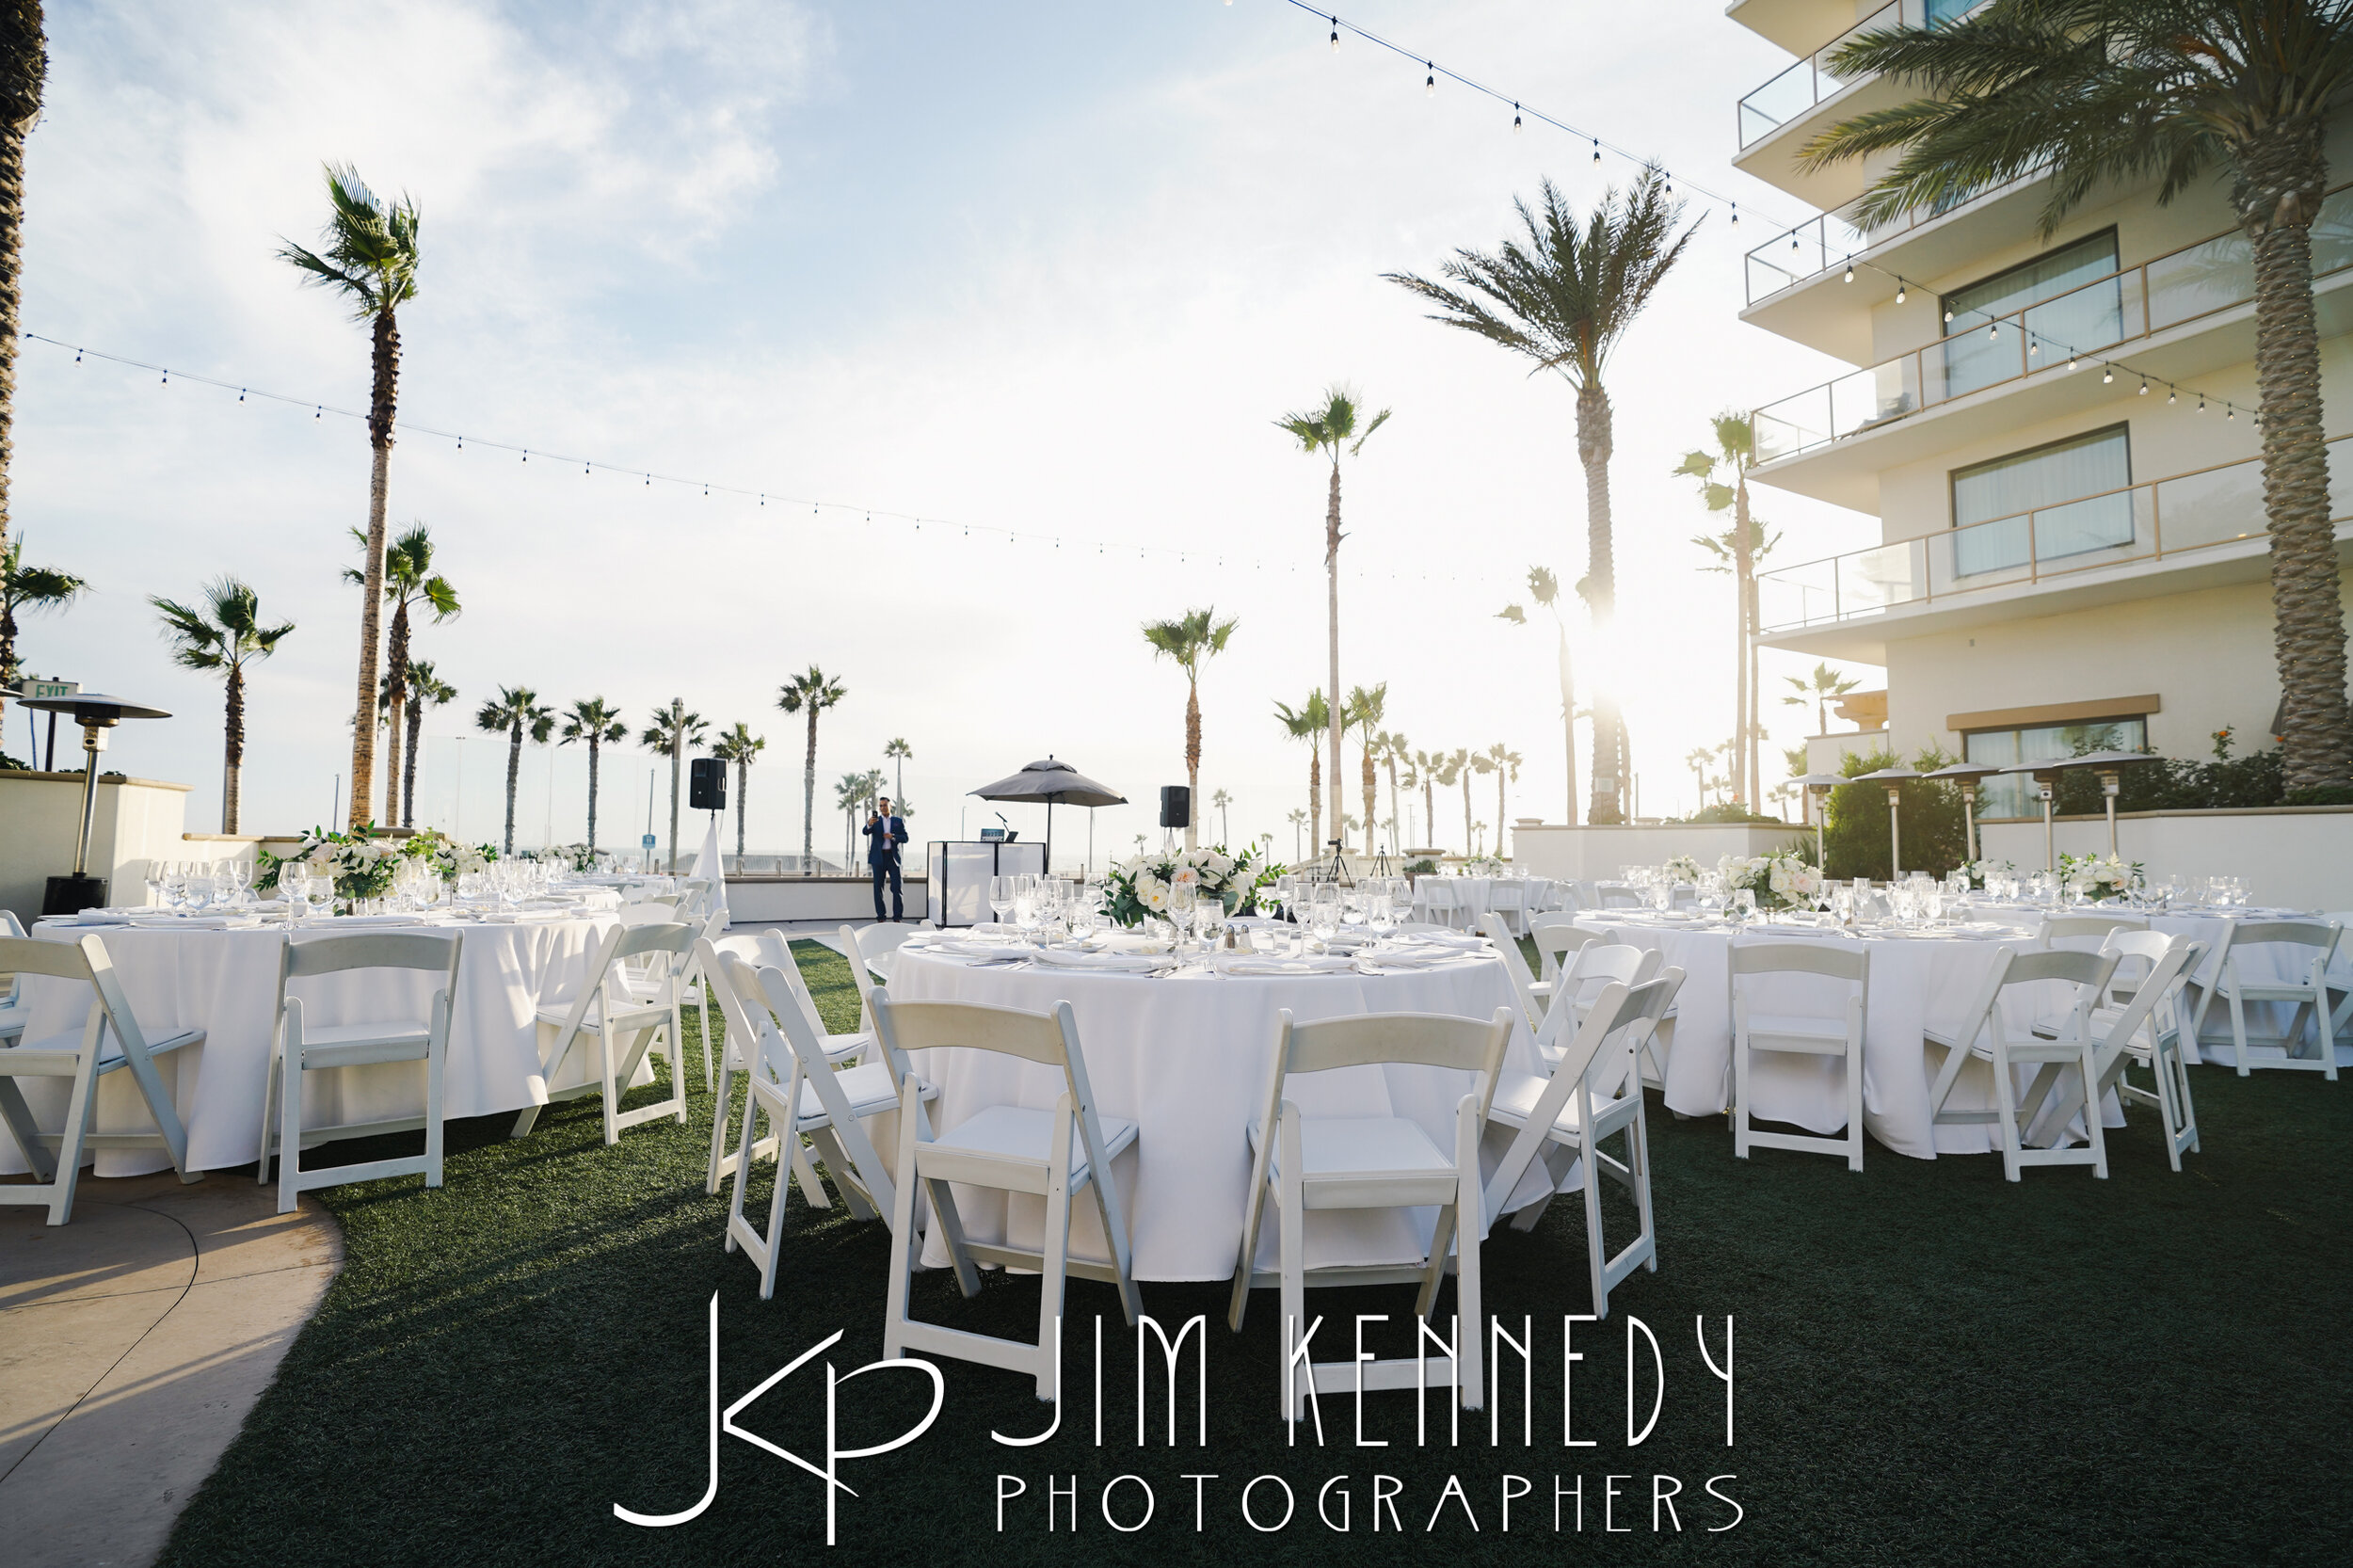 waterfront-hilton-wedding-jim-kennedy-photographers_0166.JPG